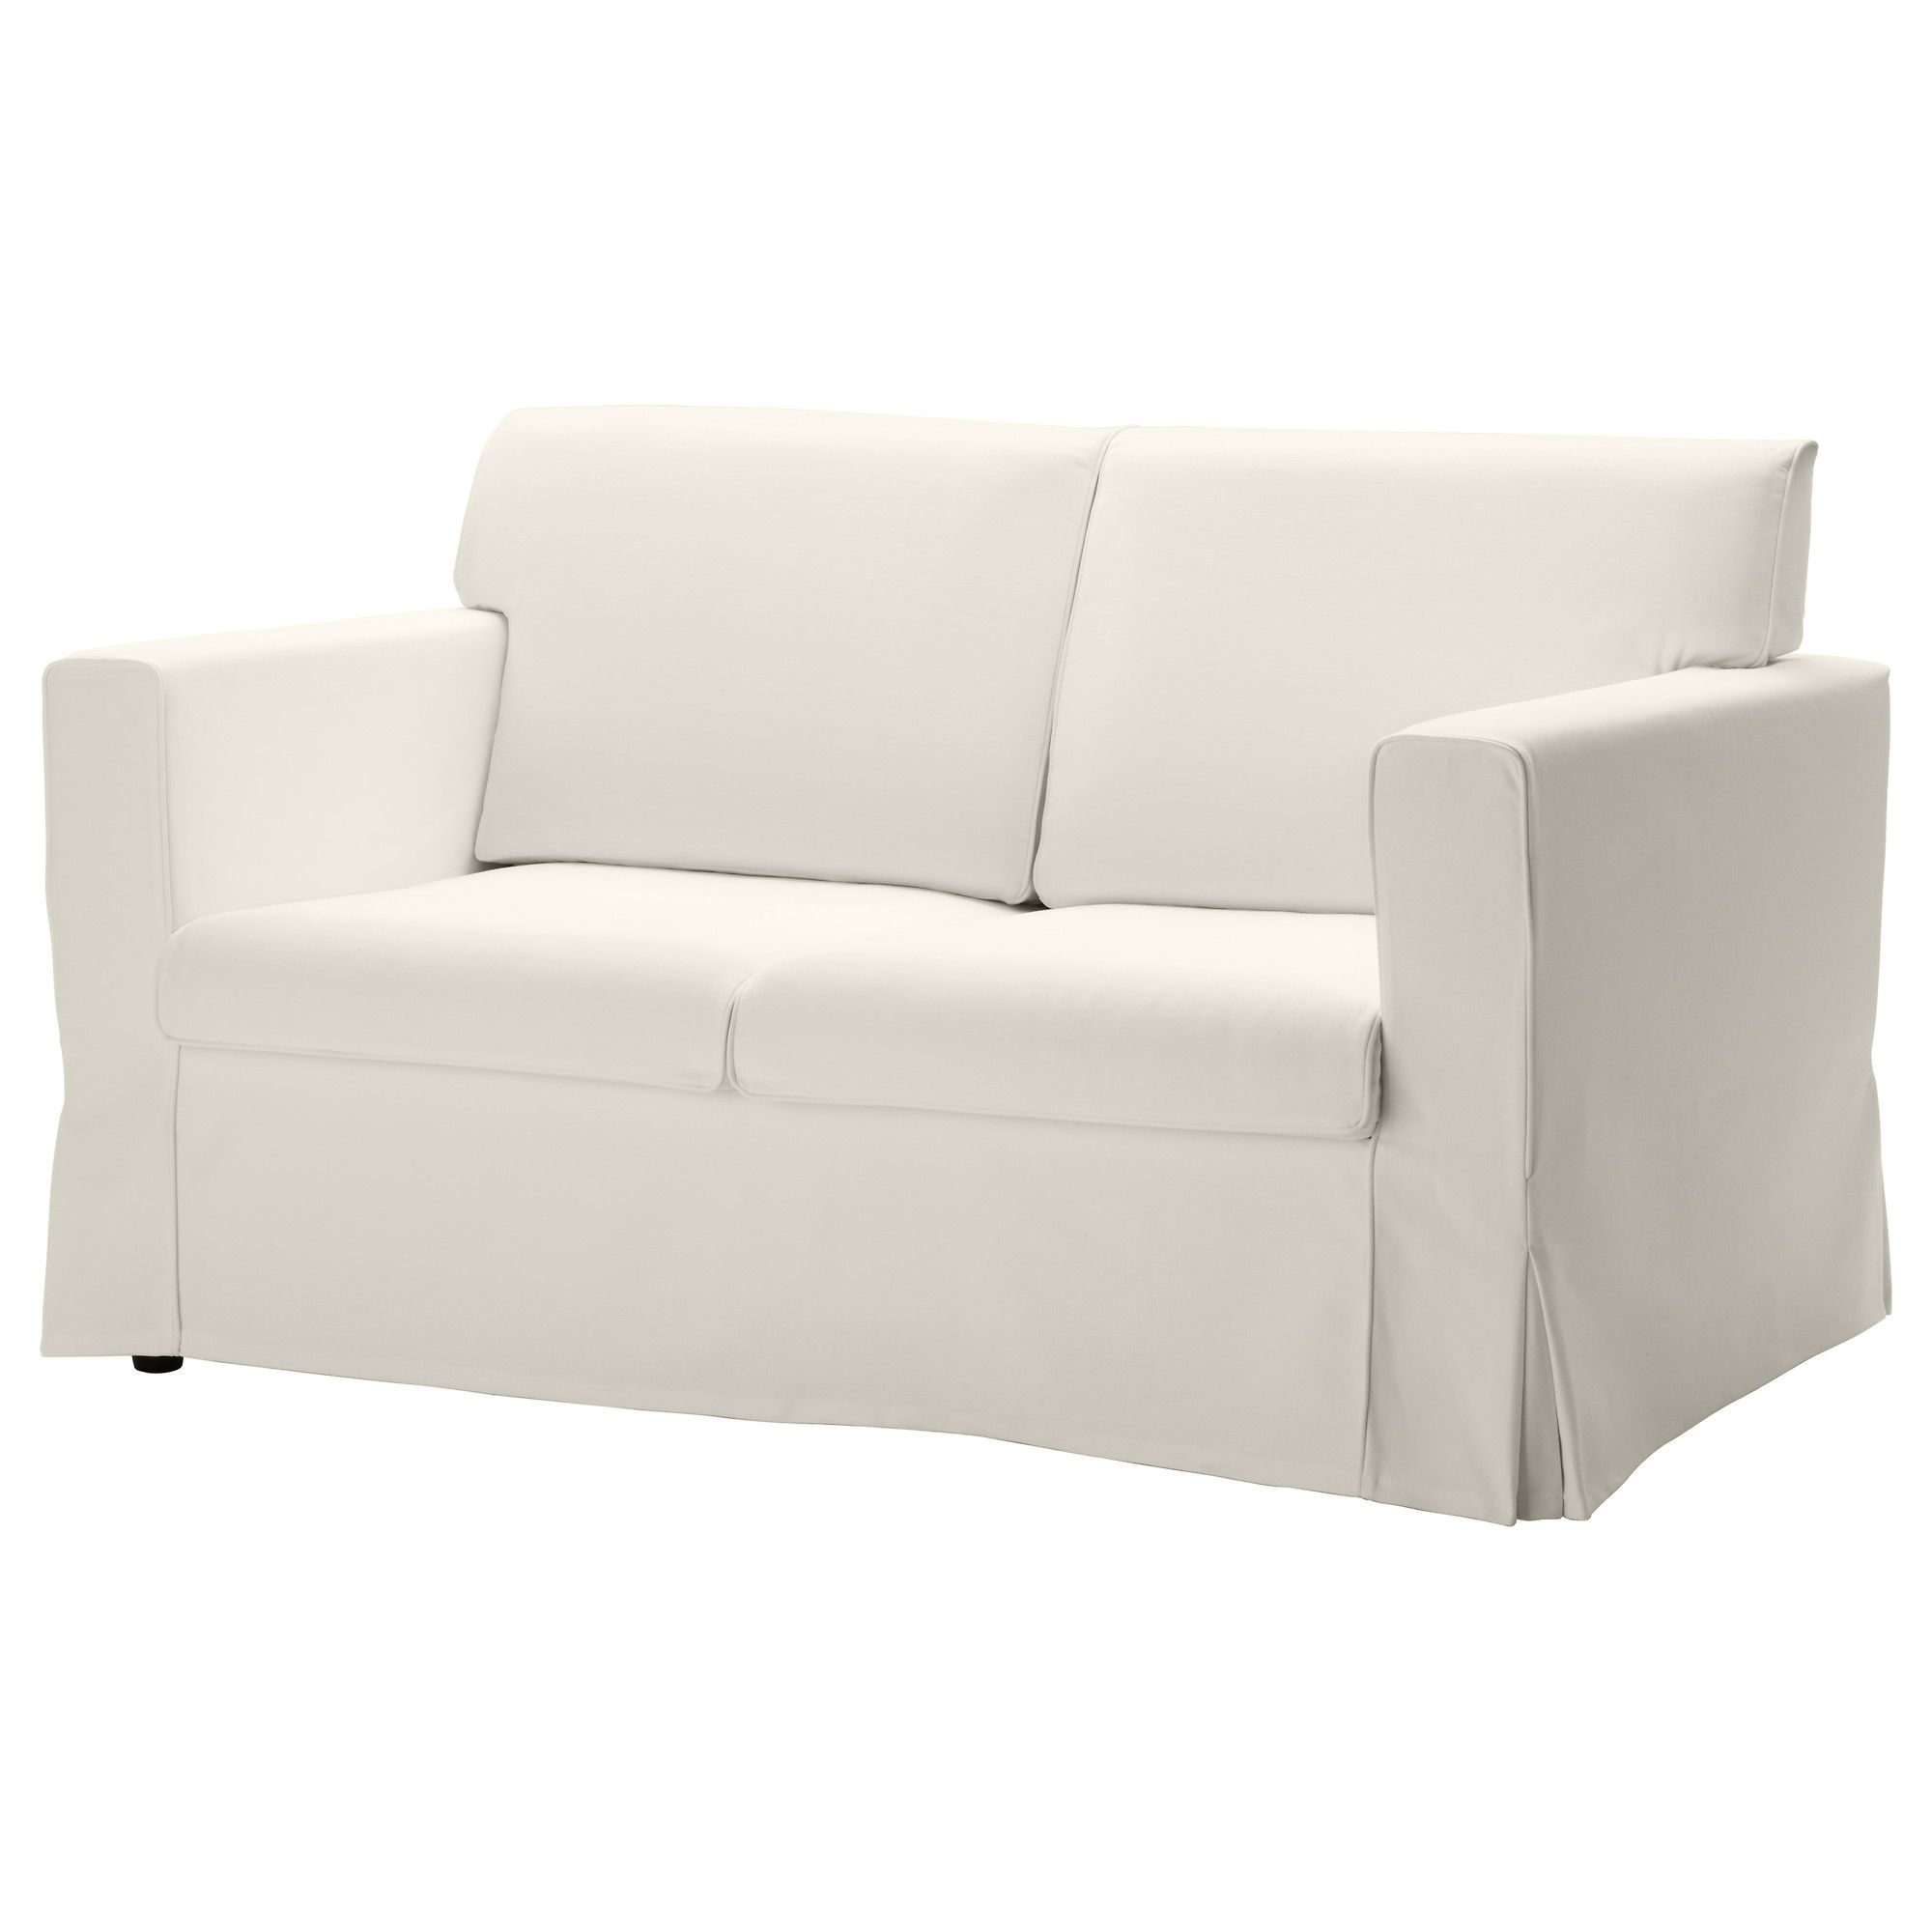 shipping loveseat knight free home fabric garden dejon overstock product by today measurements christopher